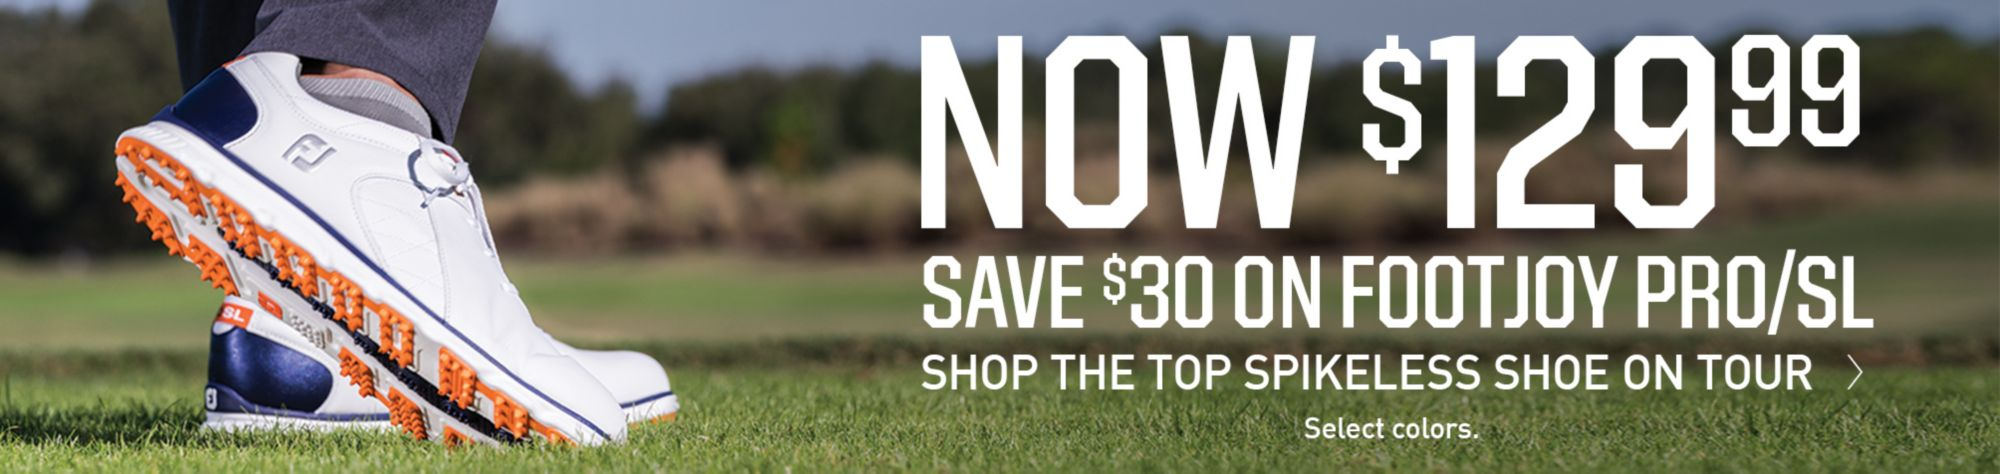 Save $30 on the Top Spikeless on Tour  Now $129.99  *Select Colors